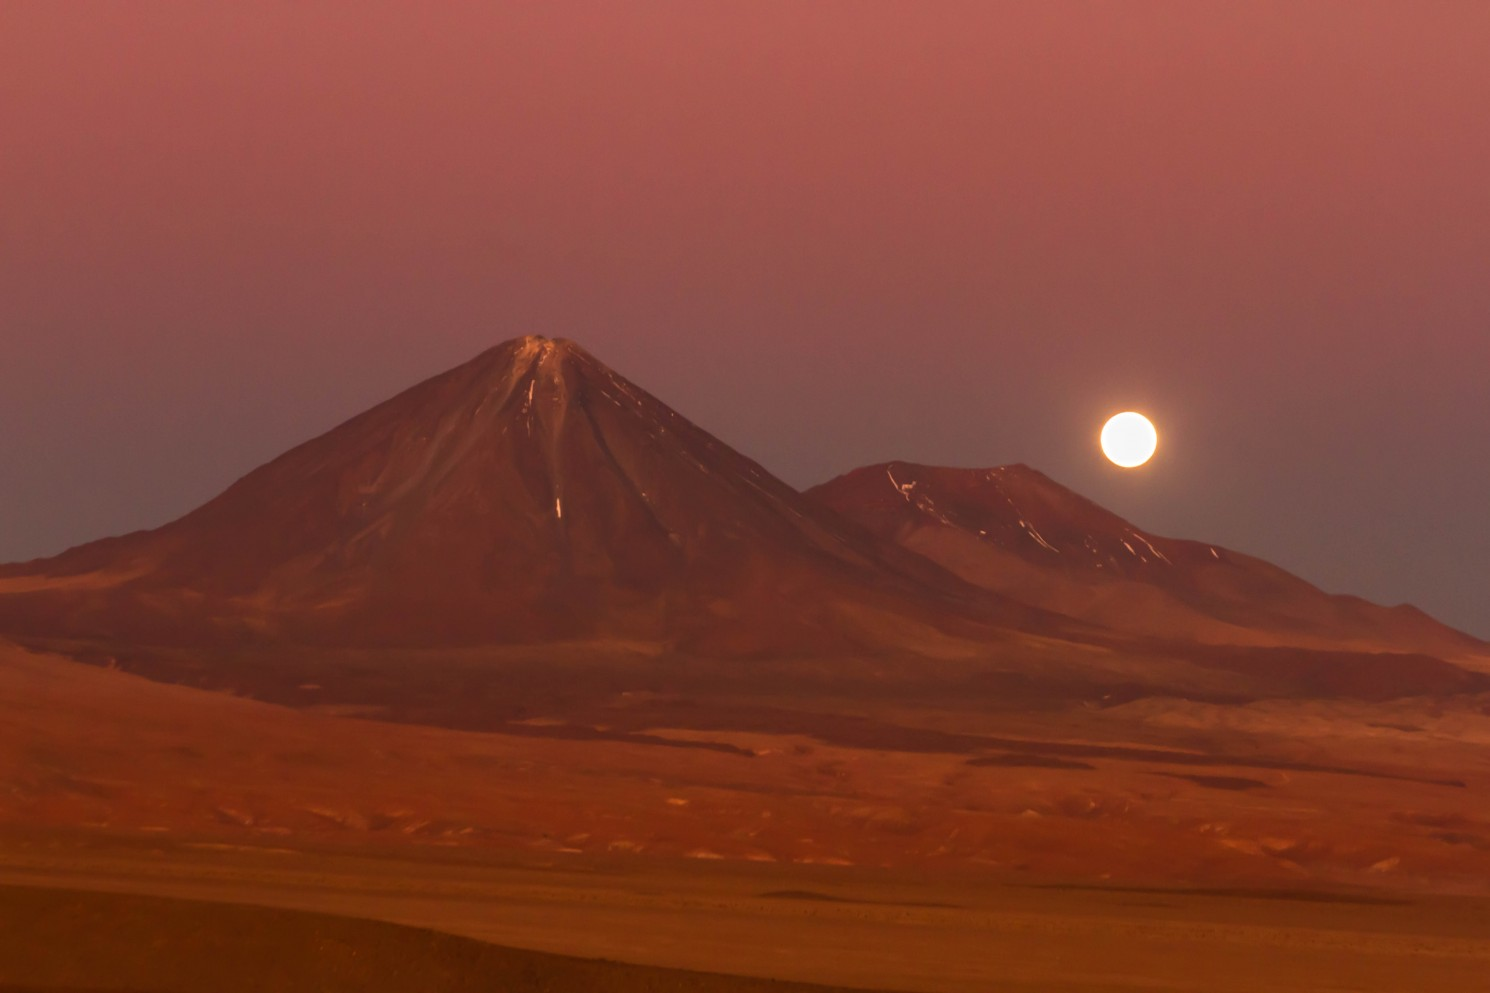 Moonrise over the Licancabur volcano in the Atacama Desert, on the border of Chile and Bolivia on Mallory on Travel adventure travel, photography, travel IainMallory_Chile_MG_9577